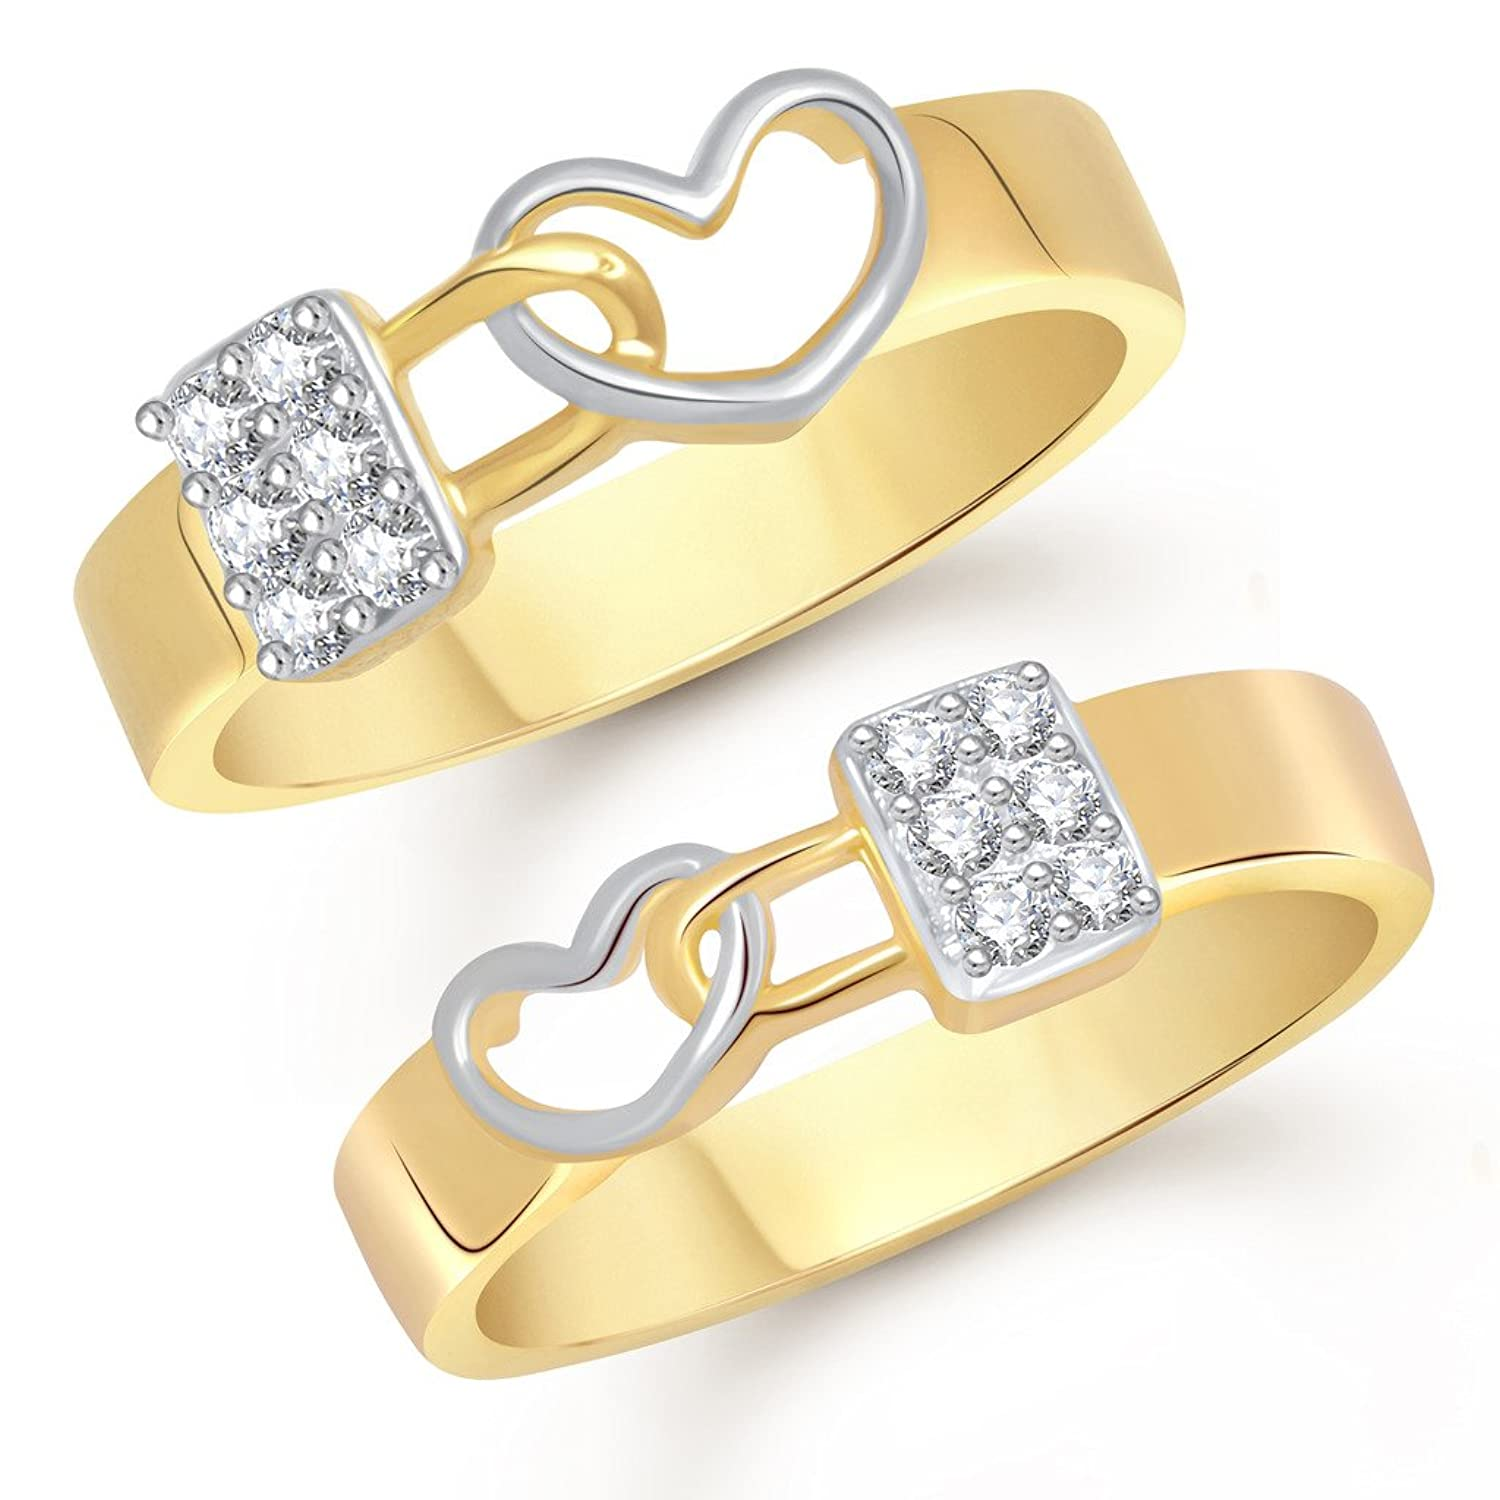 rhodium wedding annabelle band duo set copy ring solitaire rings